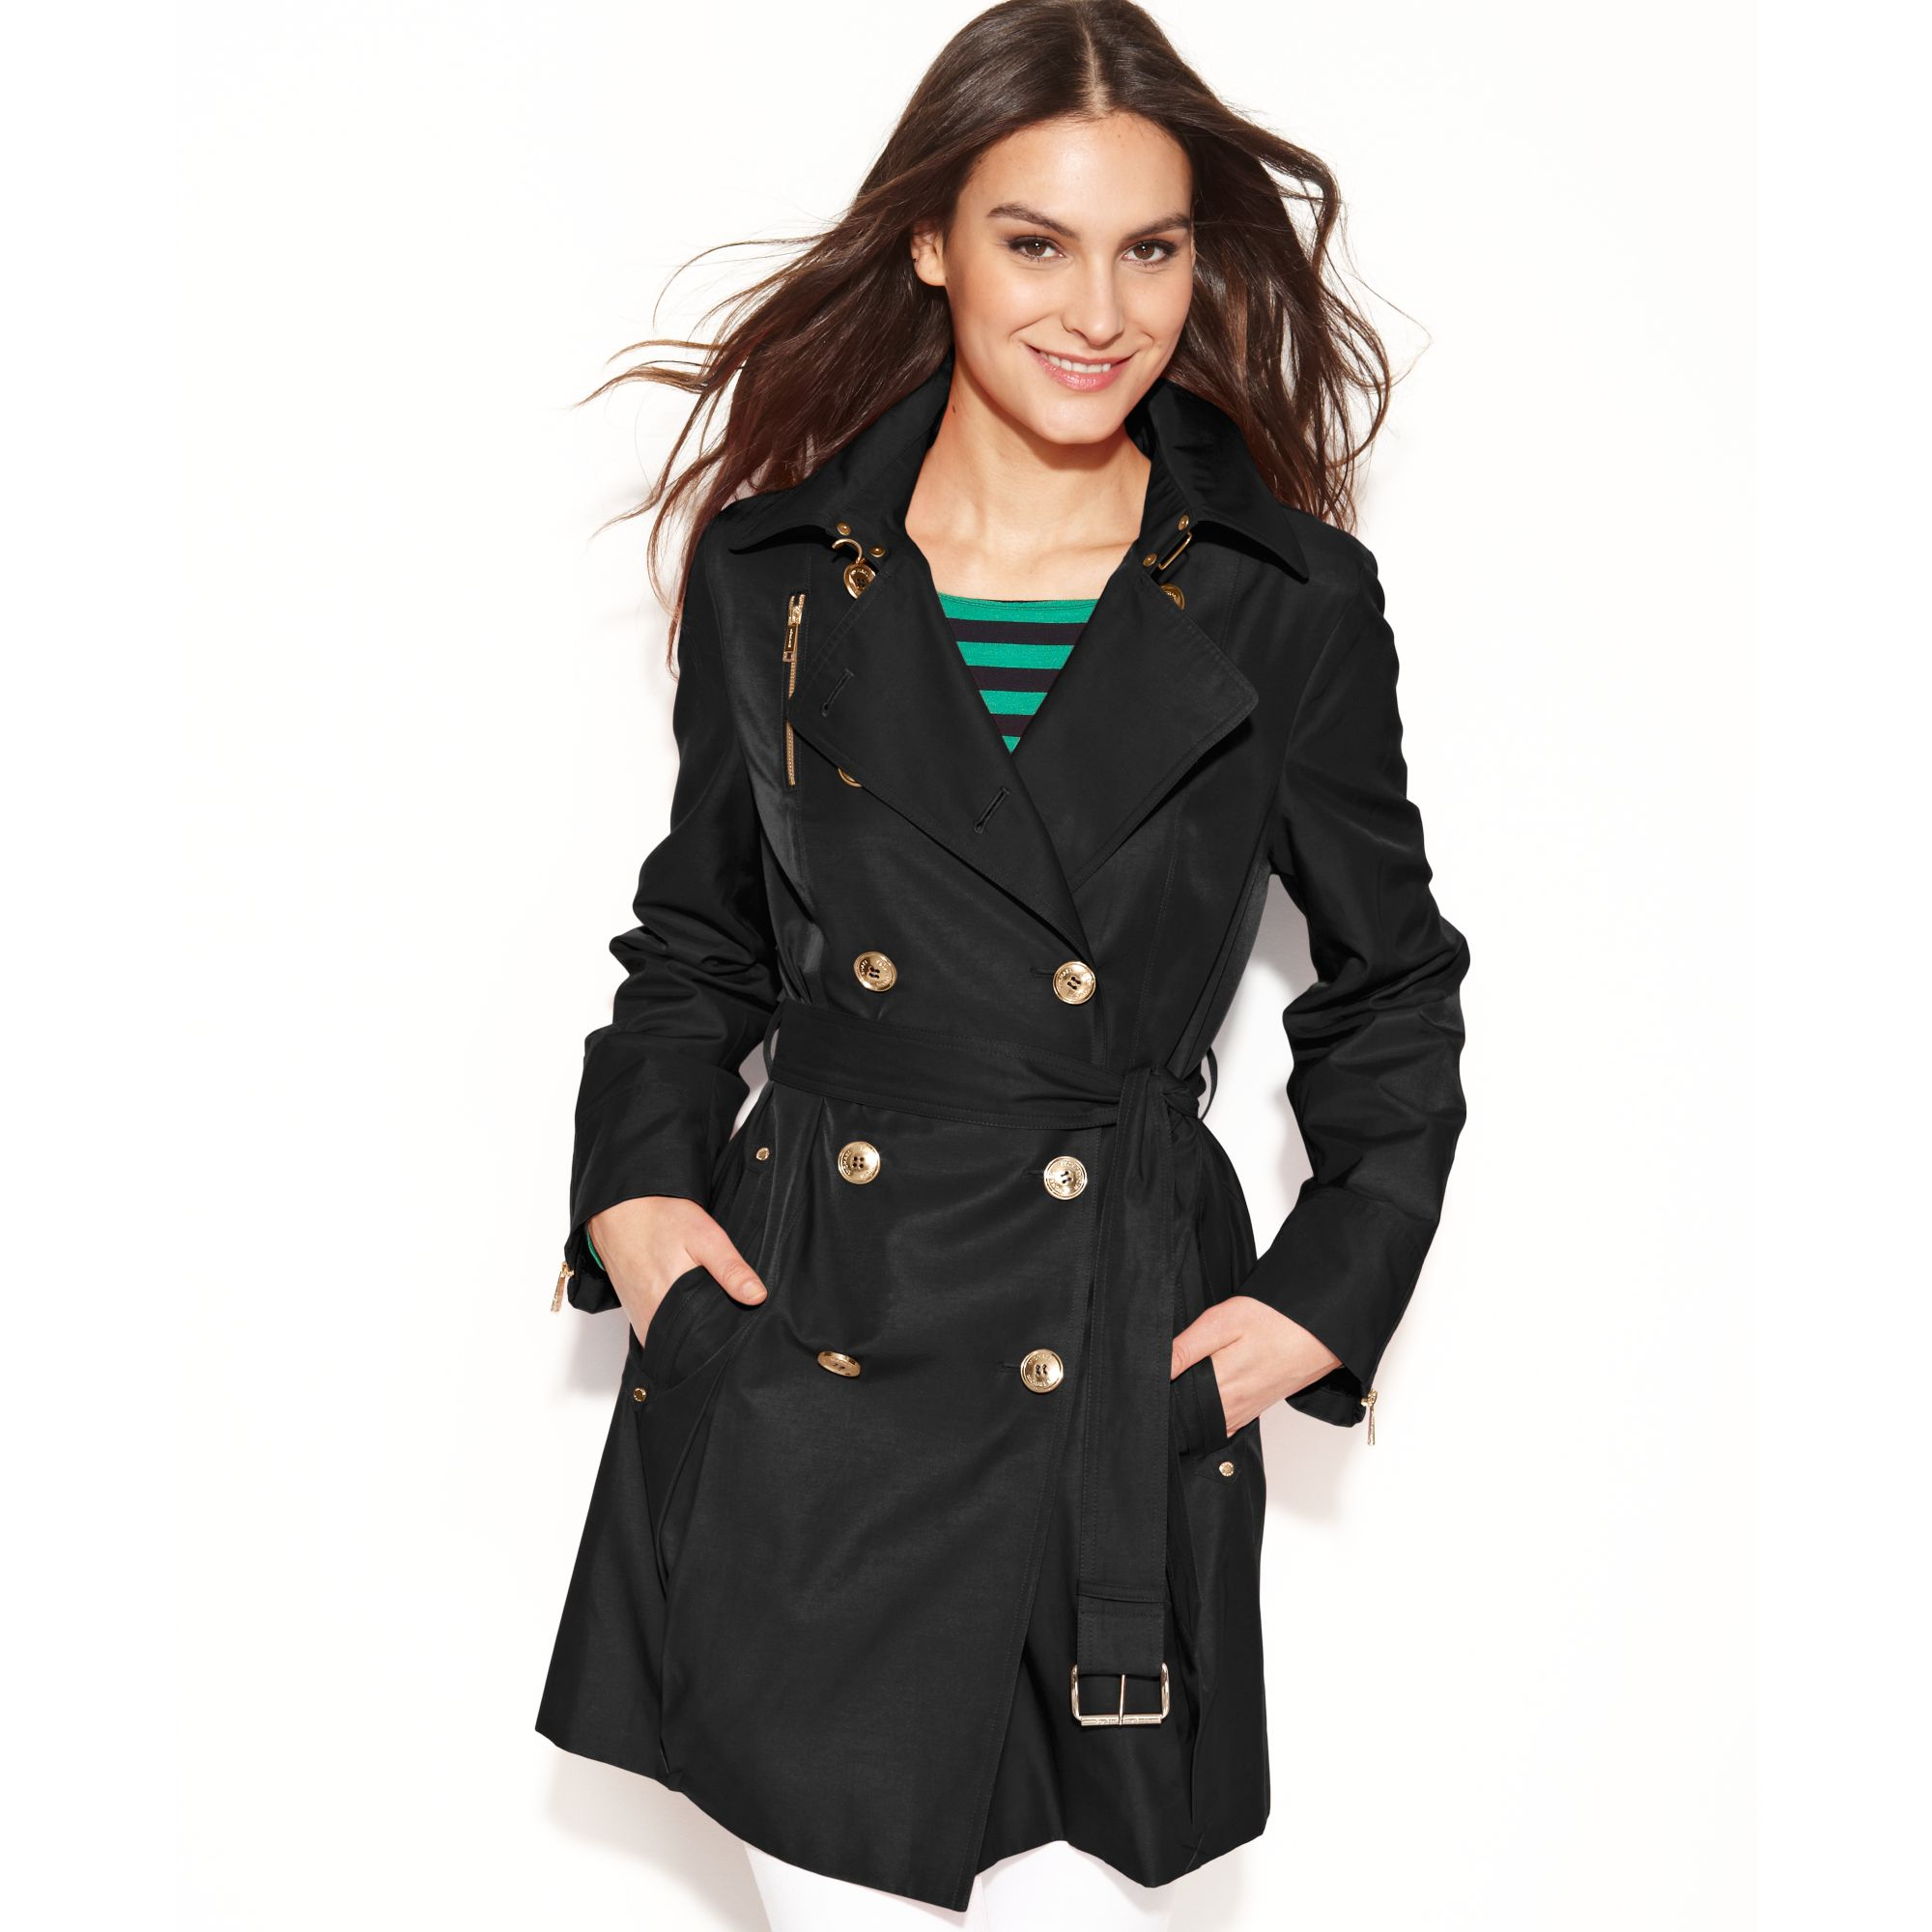 1633811b769 Lyst - Michael Kors Double Breasted Belted Trench Coat in Black